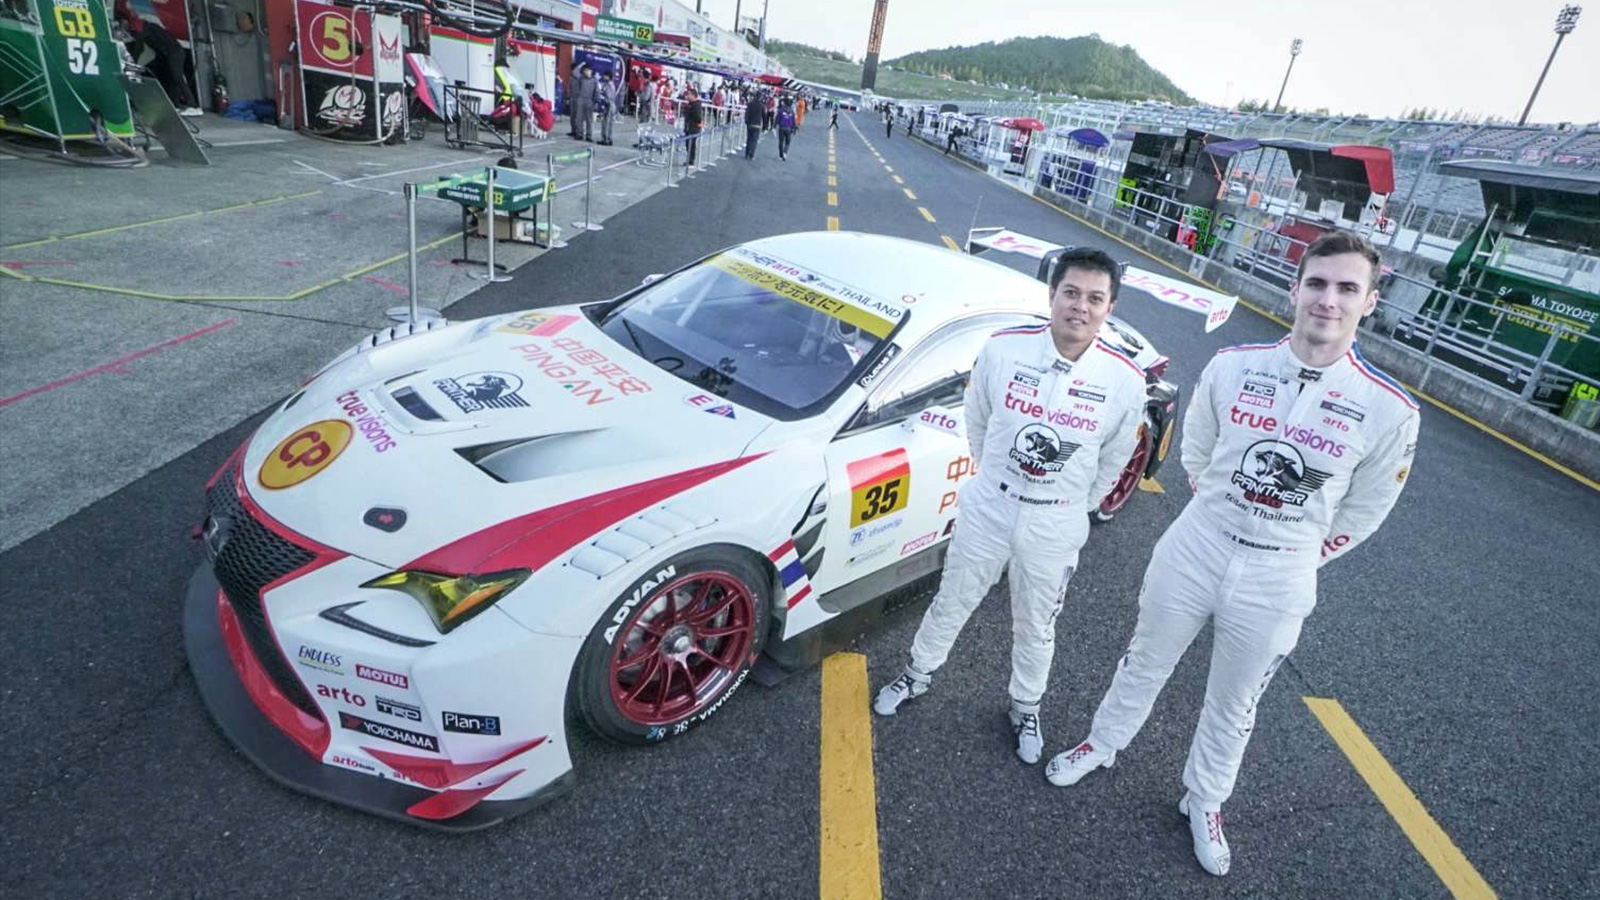 First round set for Okayama International Circuit in Japan in April.